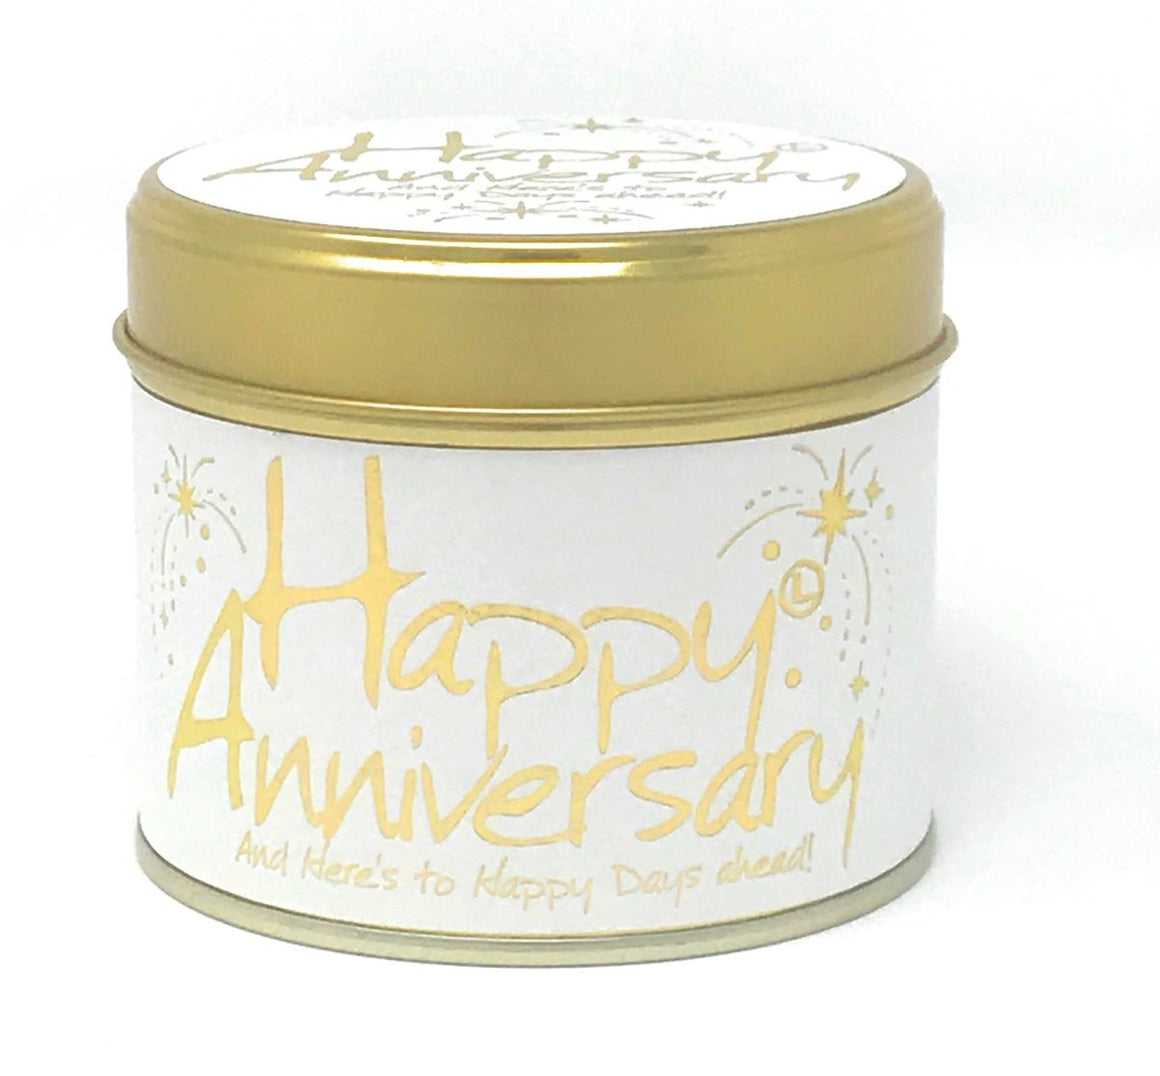 Lilly Flame happy anniversary tin candle